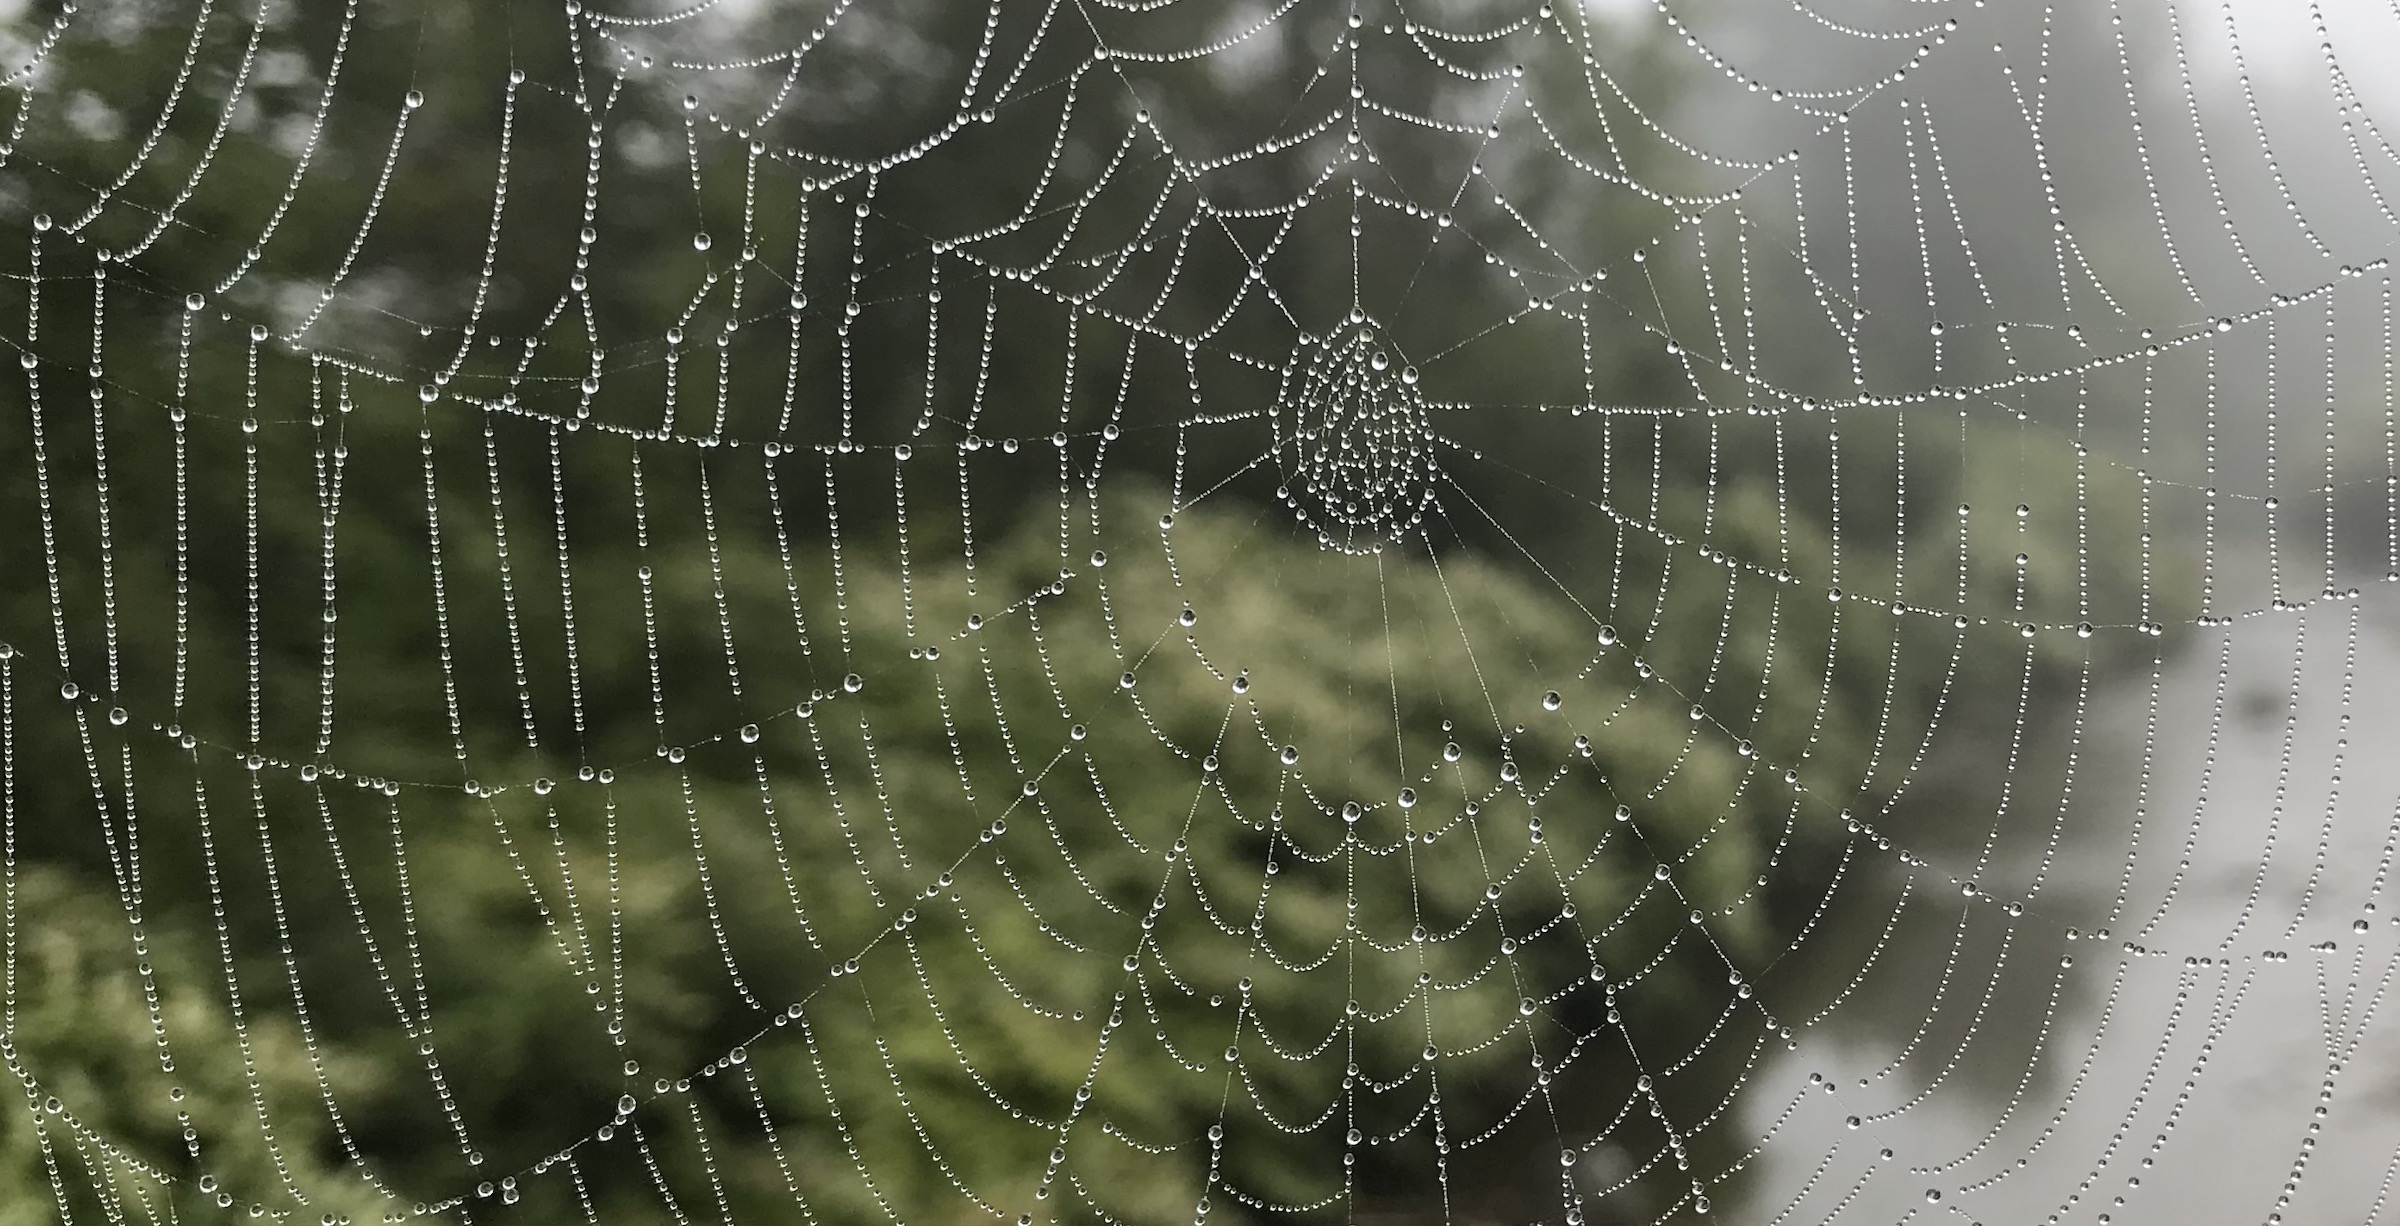 Dew highlights complexity in a spider web, like getting patient consent with no signature